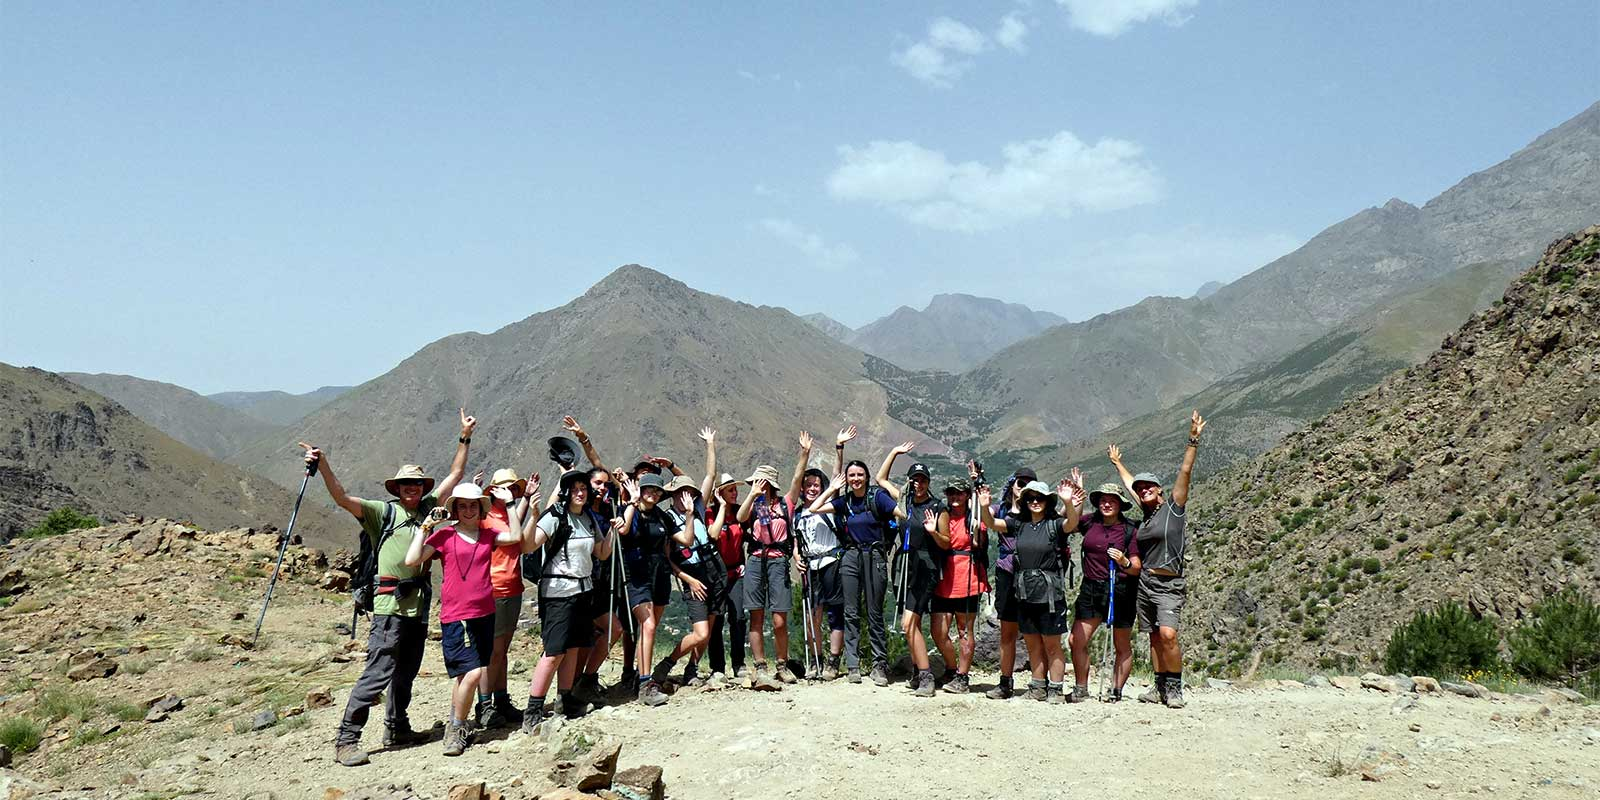 School group at the summit of a mountain in the Atlas Mountains of Morocco